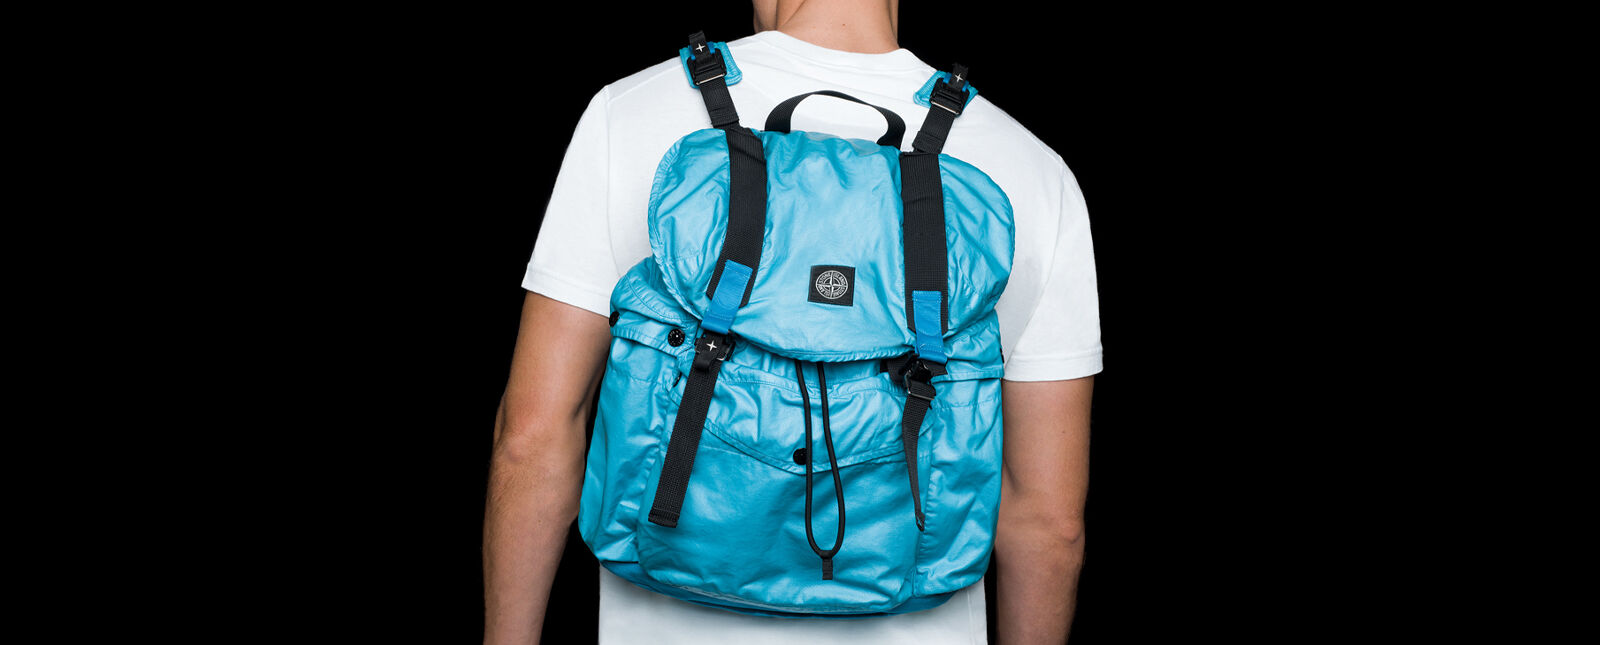 Back view of model wearing a white crewneck t shirt and a light blue shiny effect backpack with shoulder straps, flap cover with double fastening and a central pocket with flap and snap.